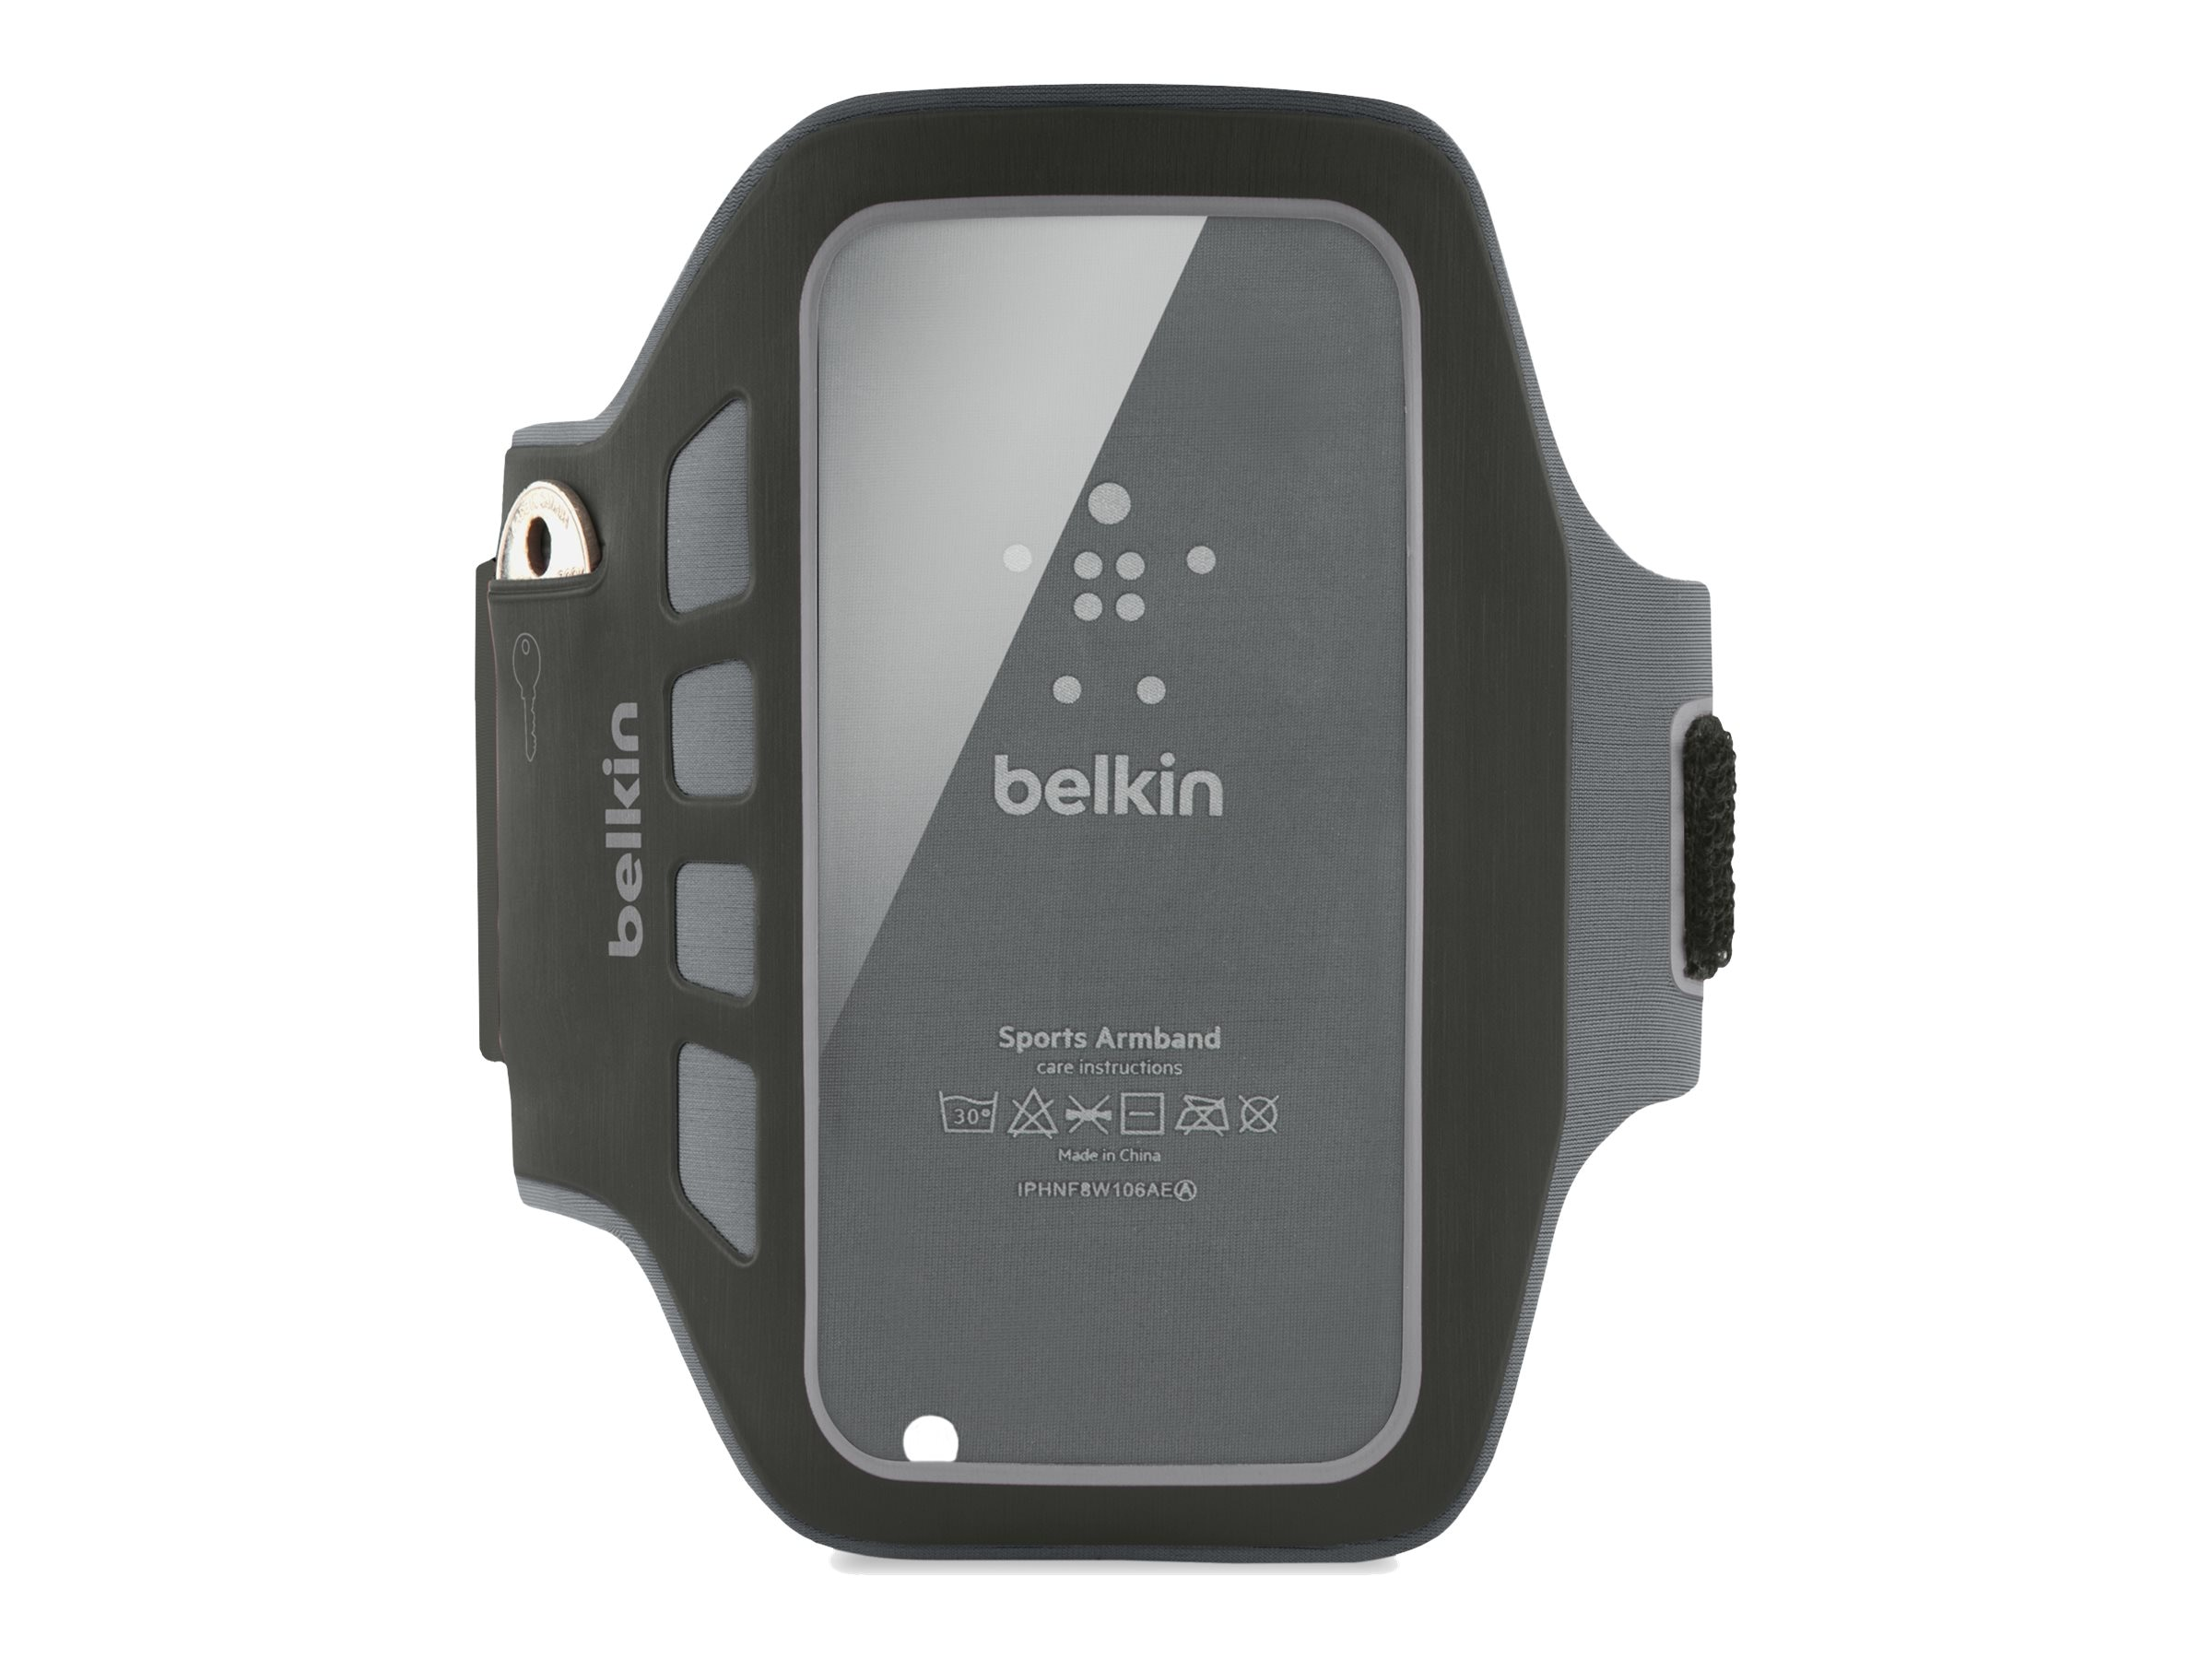 Belkin Ease-Fit Plus Armband, Blacktop for iPhone5, F8W106TTC00, 14860693, Carrying Cases - Phones/PDAs